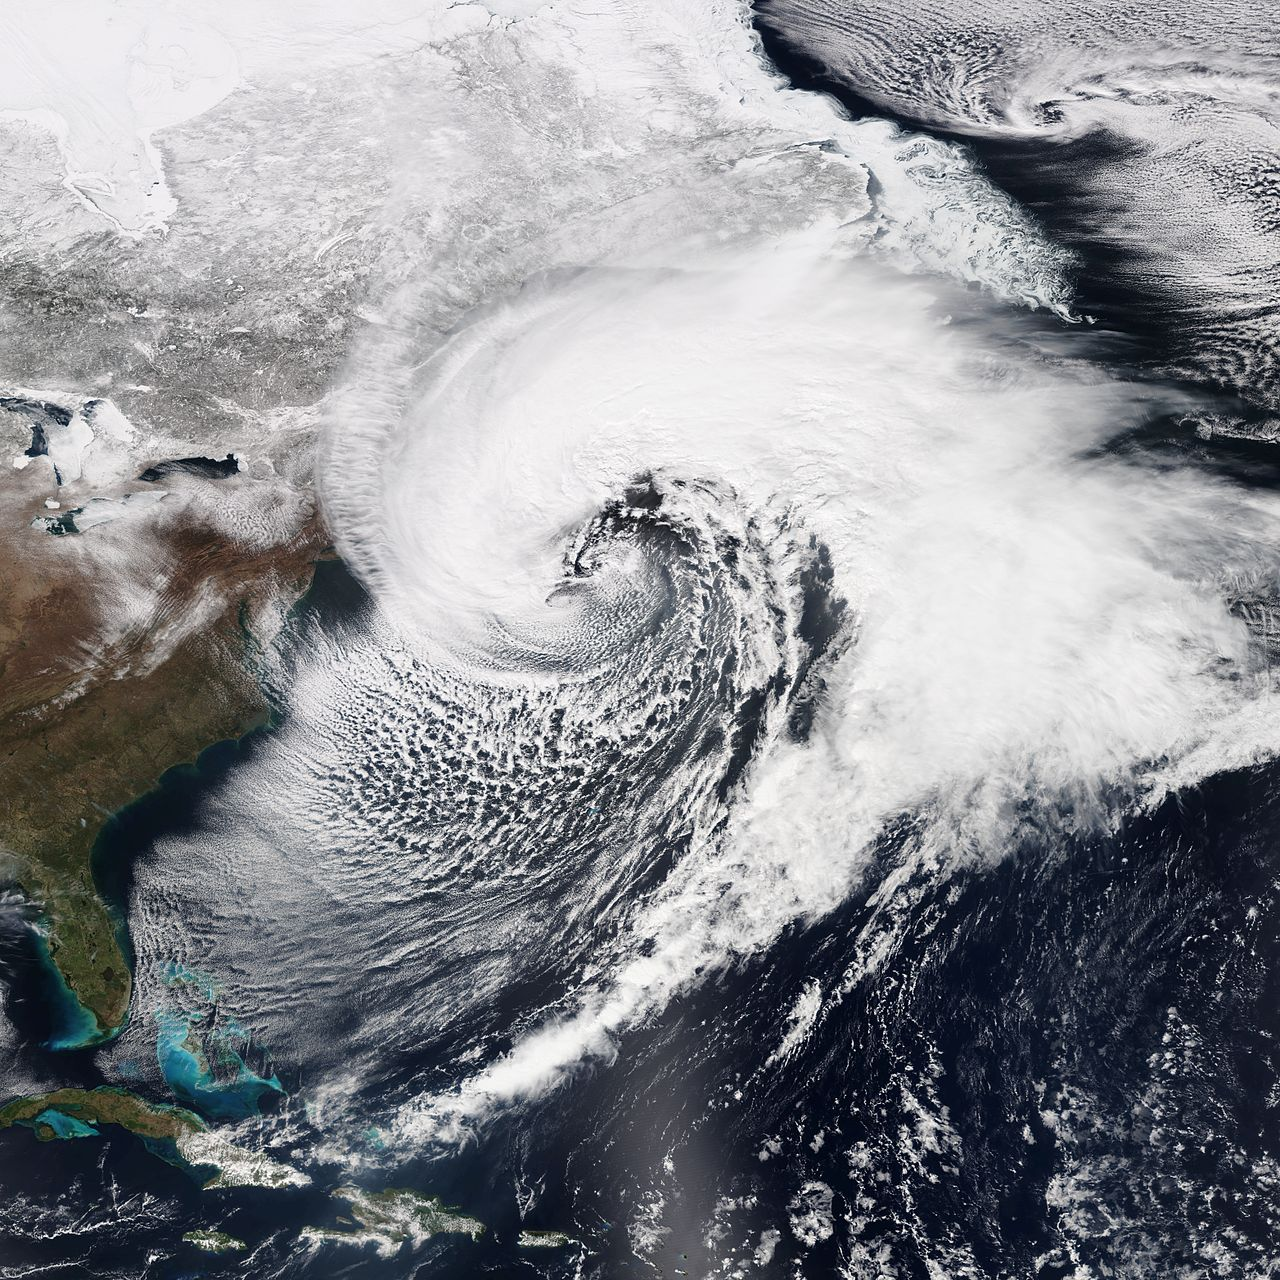 A nor'easter is a macro-scale storm along the upper East Coast of the United States and Atlantic Canada; the name is derived from the direction the wind is coming in from the storm. The wind on land, therefore, will generally blow from the northeast.